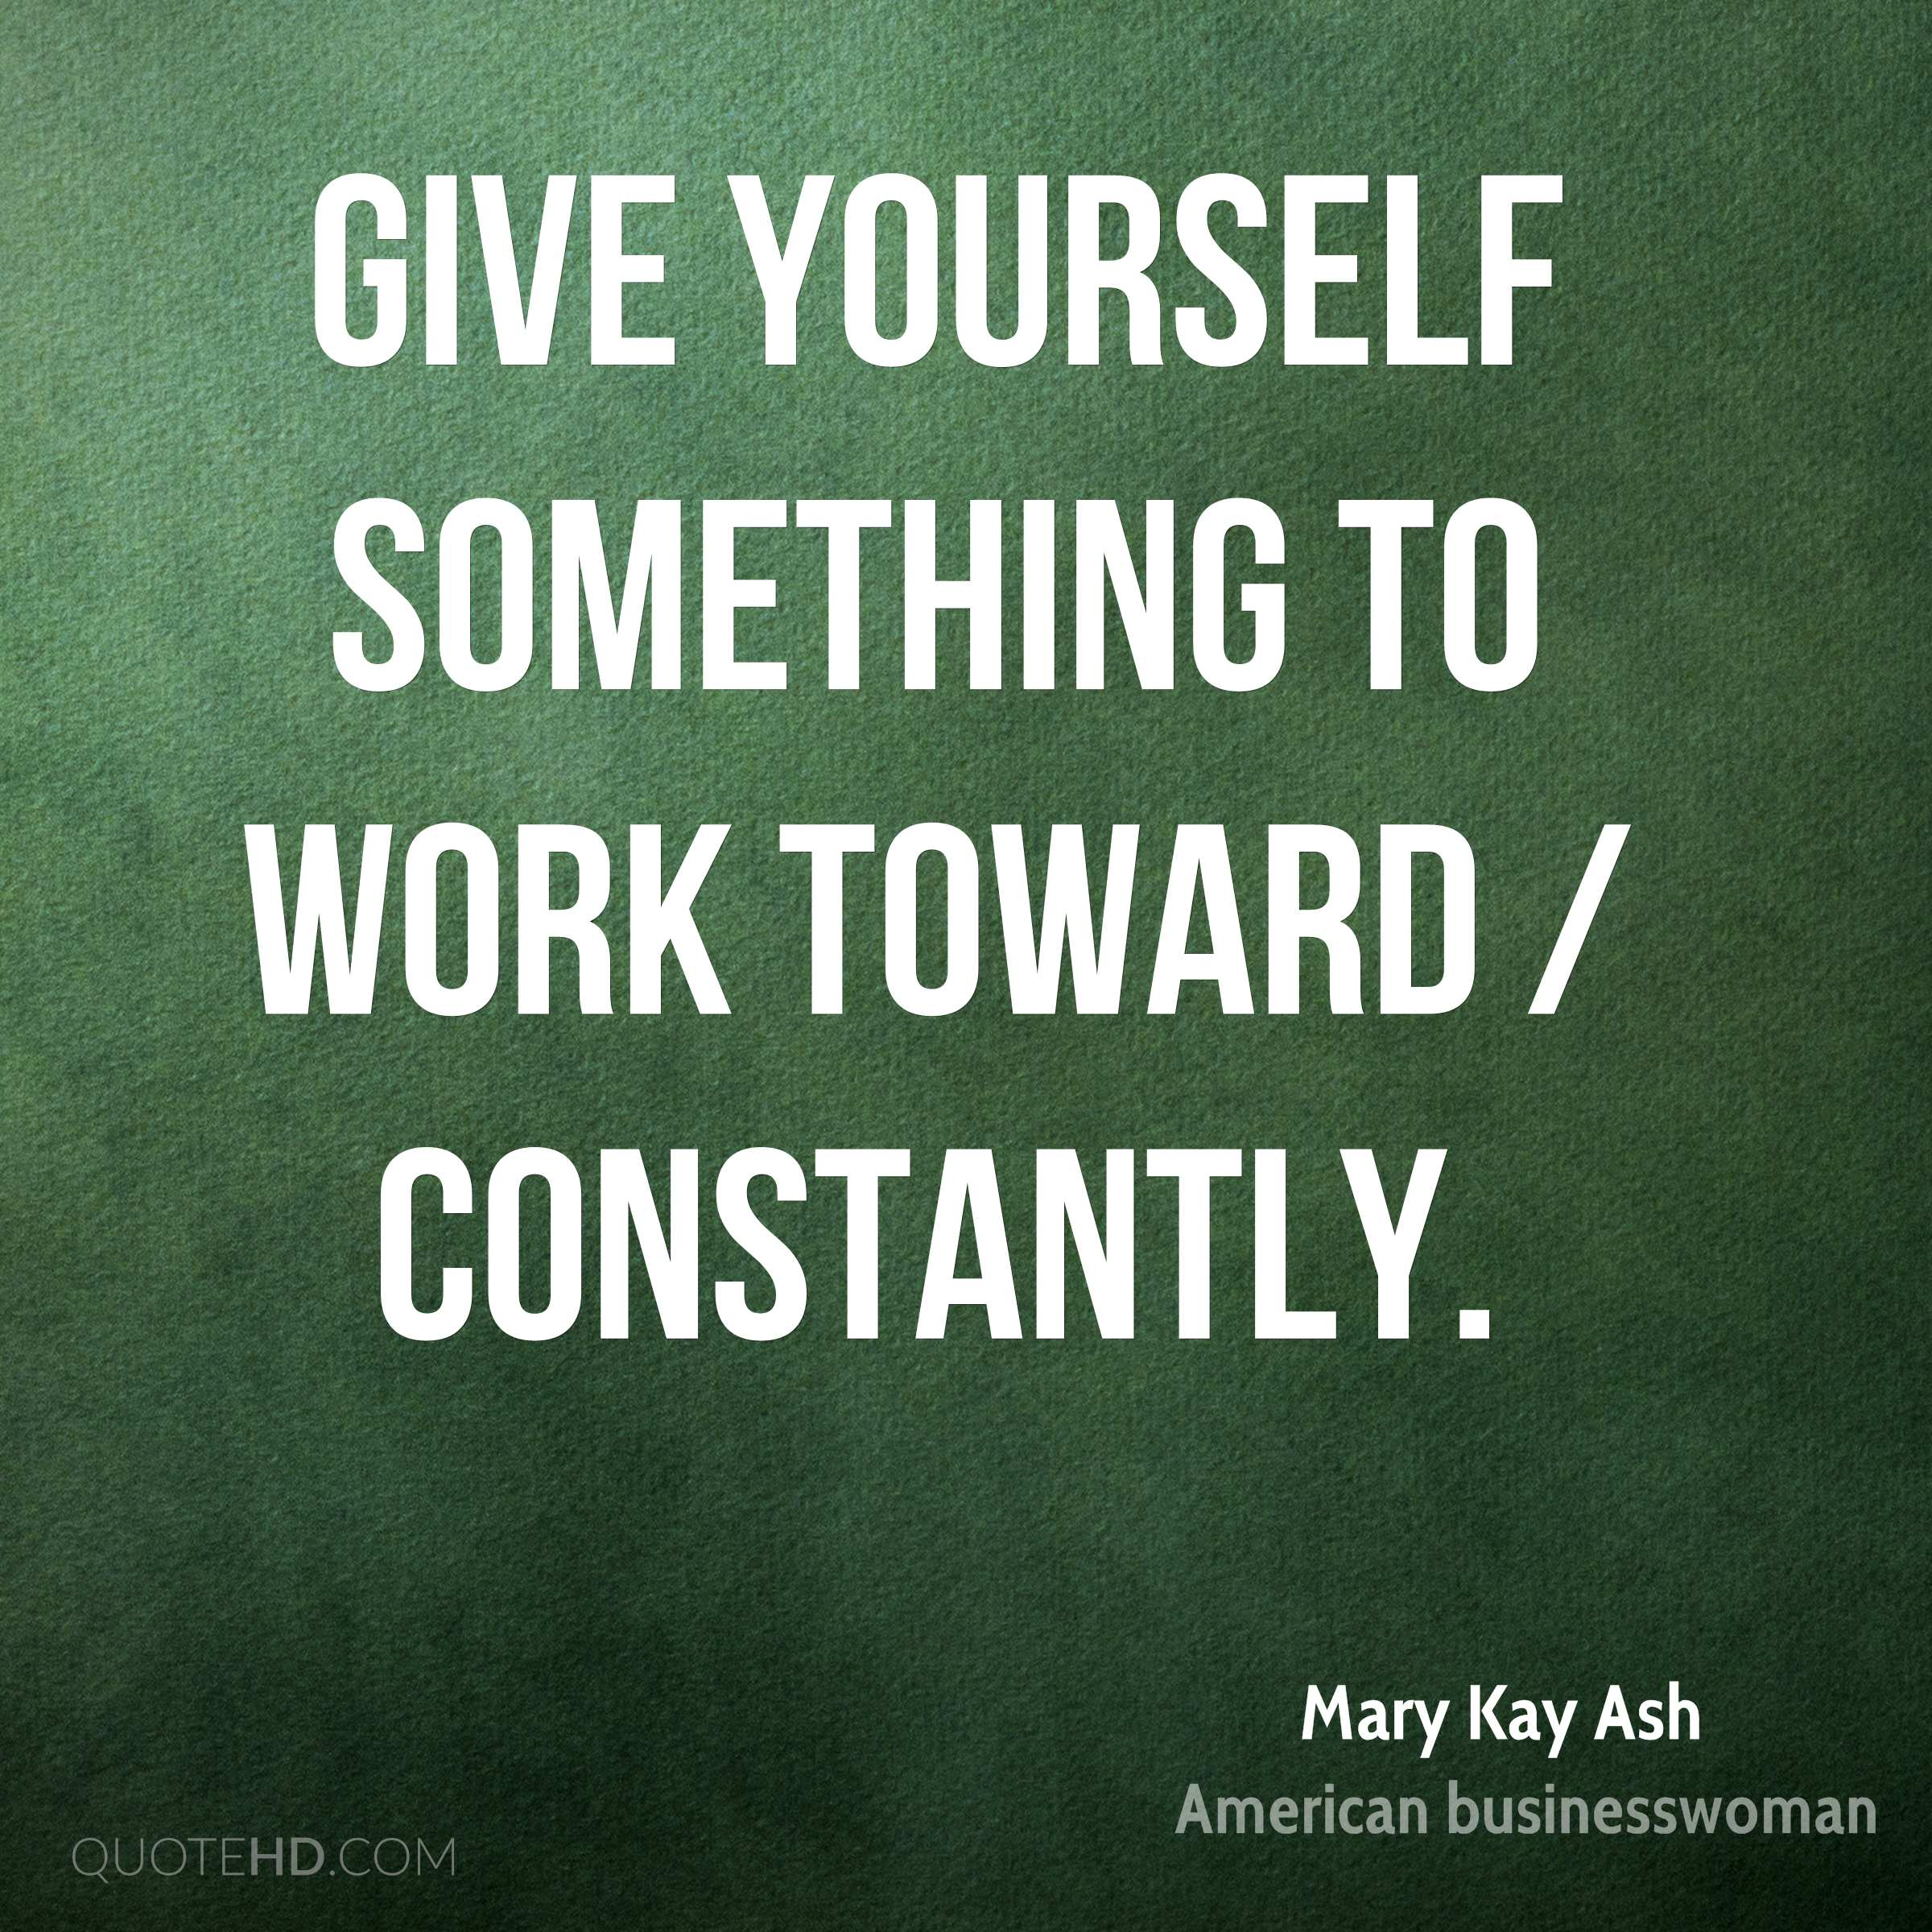 Give yourself something to work toward / constantly.